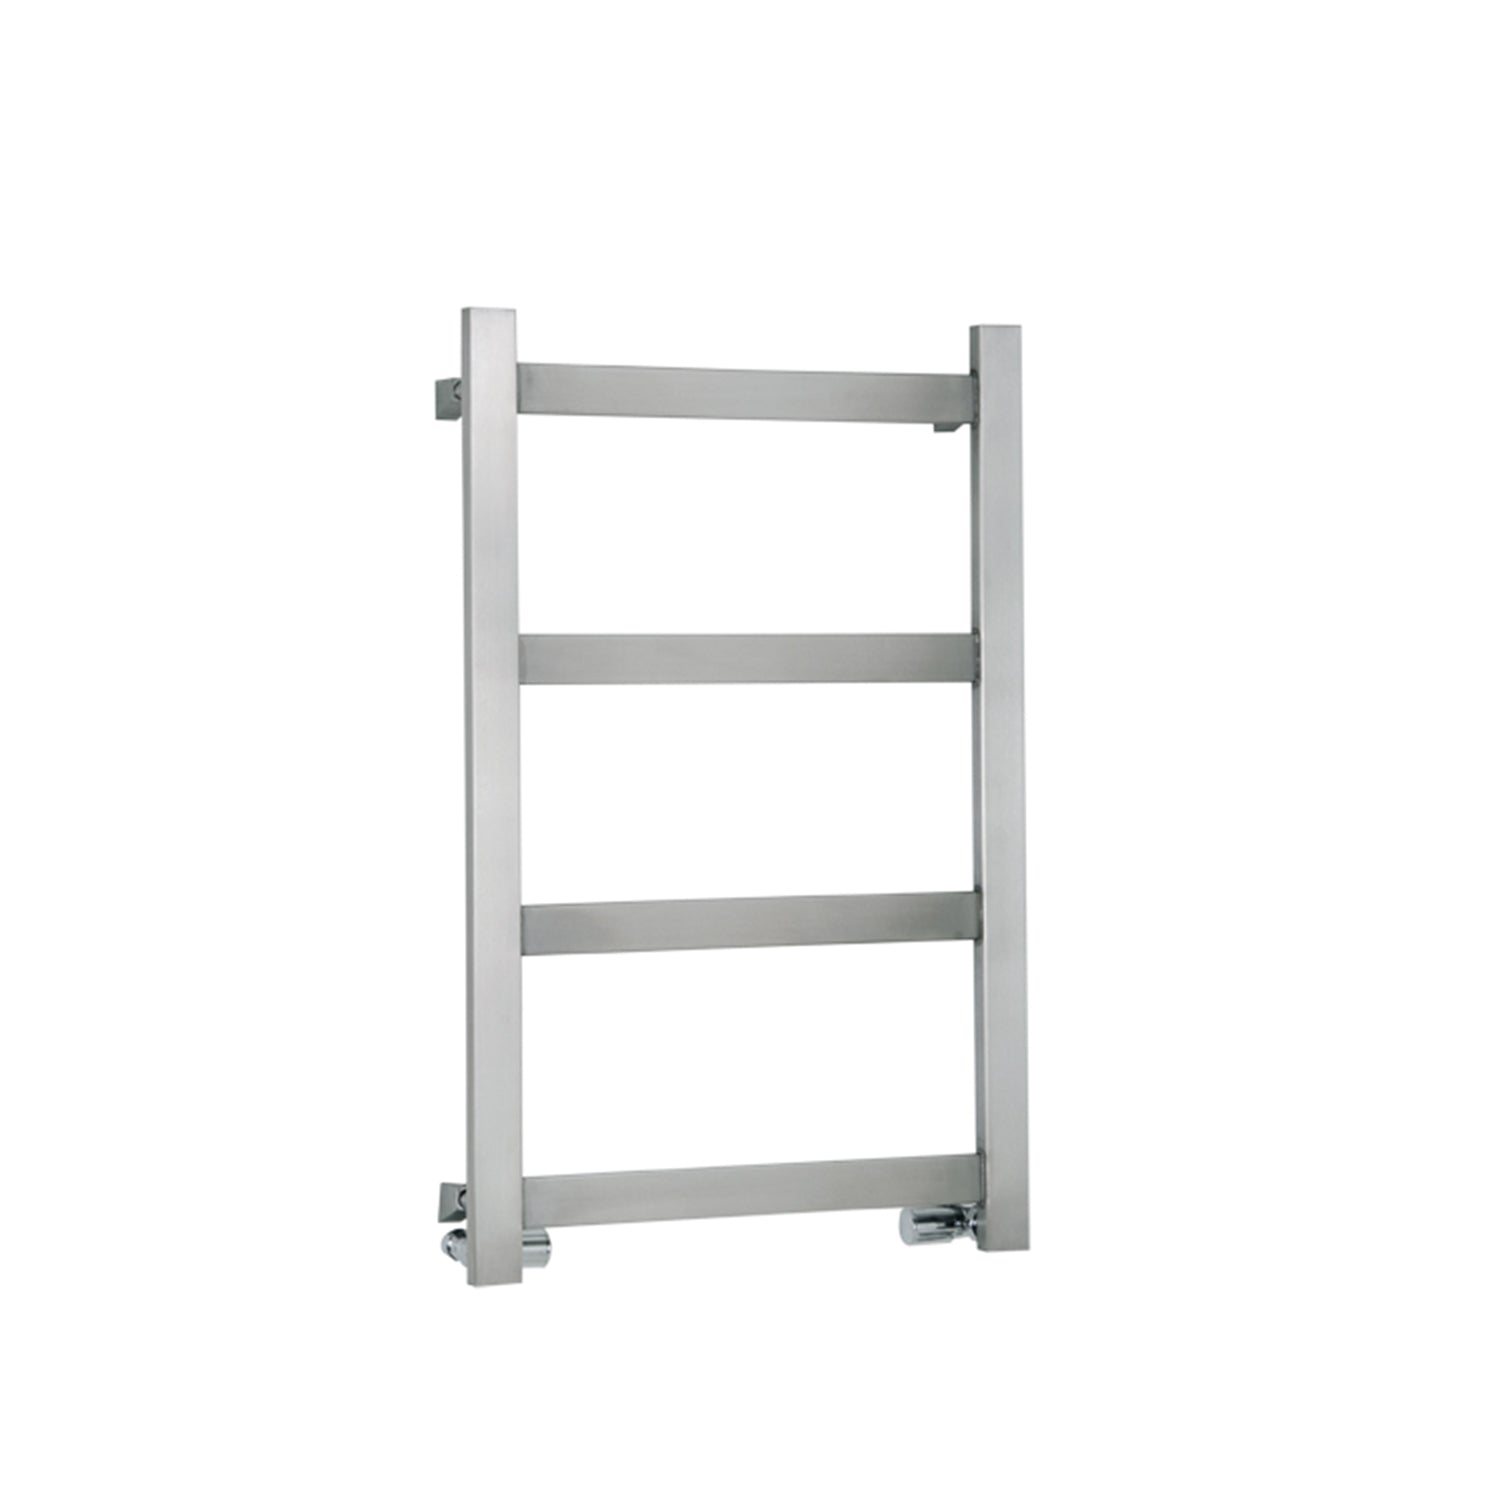 Designer Towel Rail With Square Tube Reina Mina